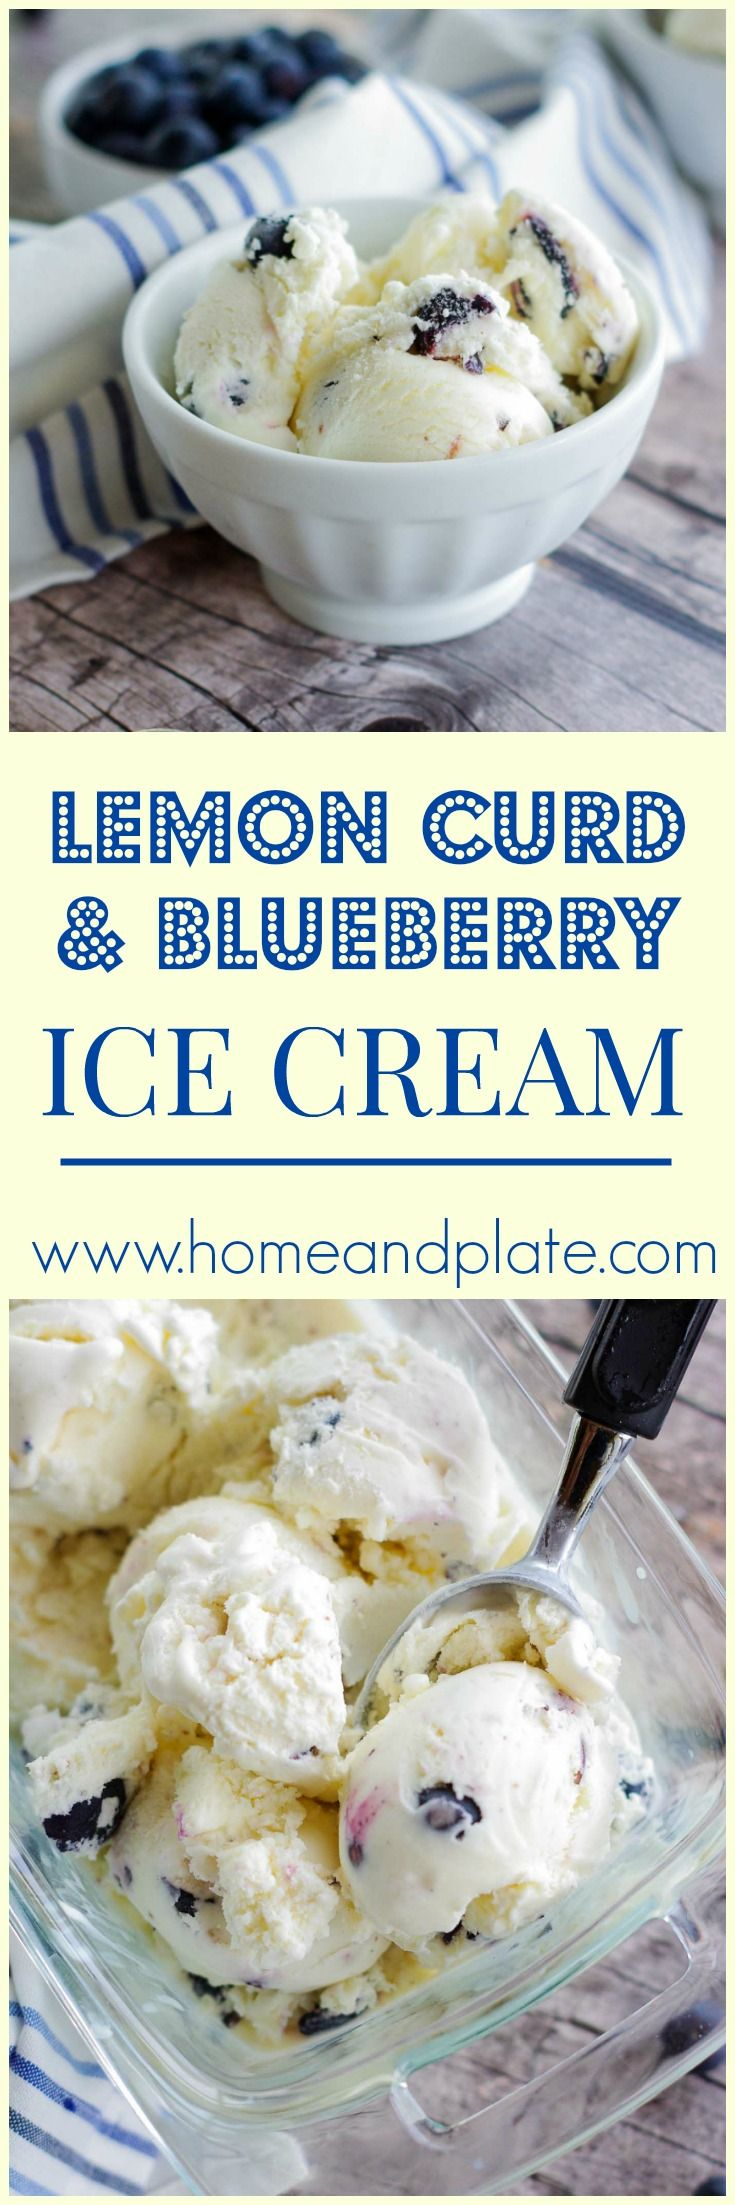 Lemon Curd & Blueberry Ice Cream | www.homeandplate.com | Cool down on a hot summer day with a tart and sweet lemon curd and blueberry ice cream.